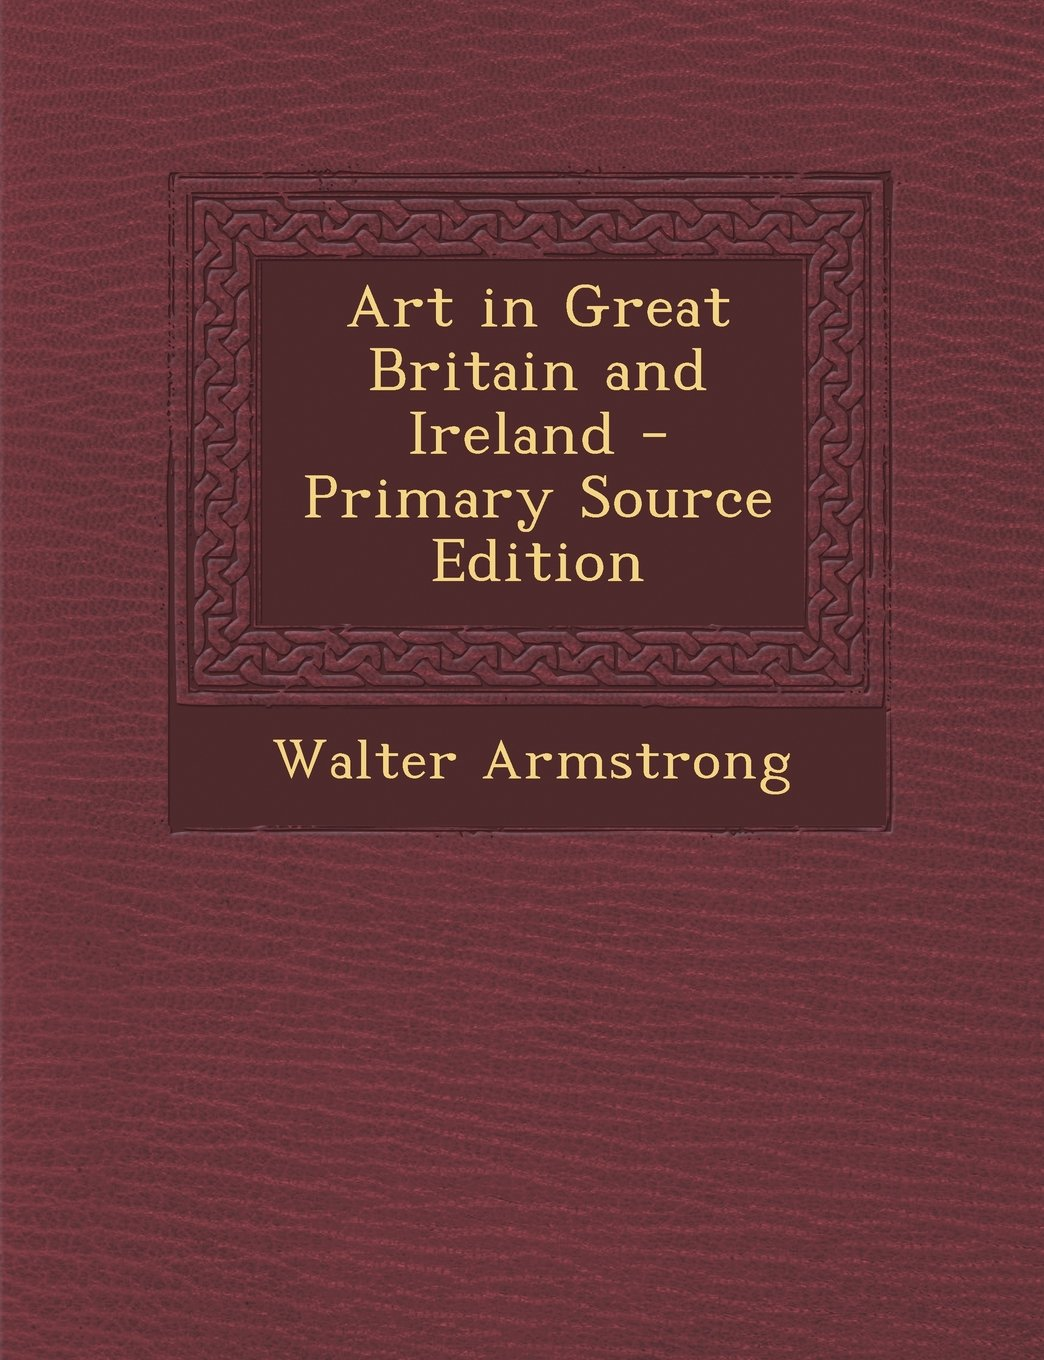 Art in Great Britain and Ireland - Primary Source Edition PDF